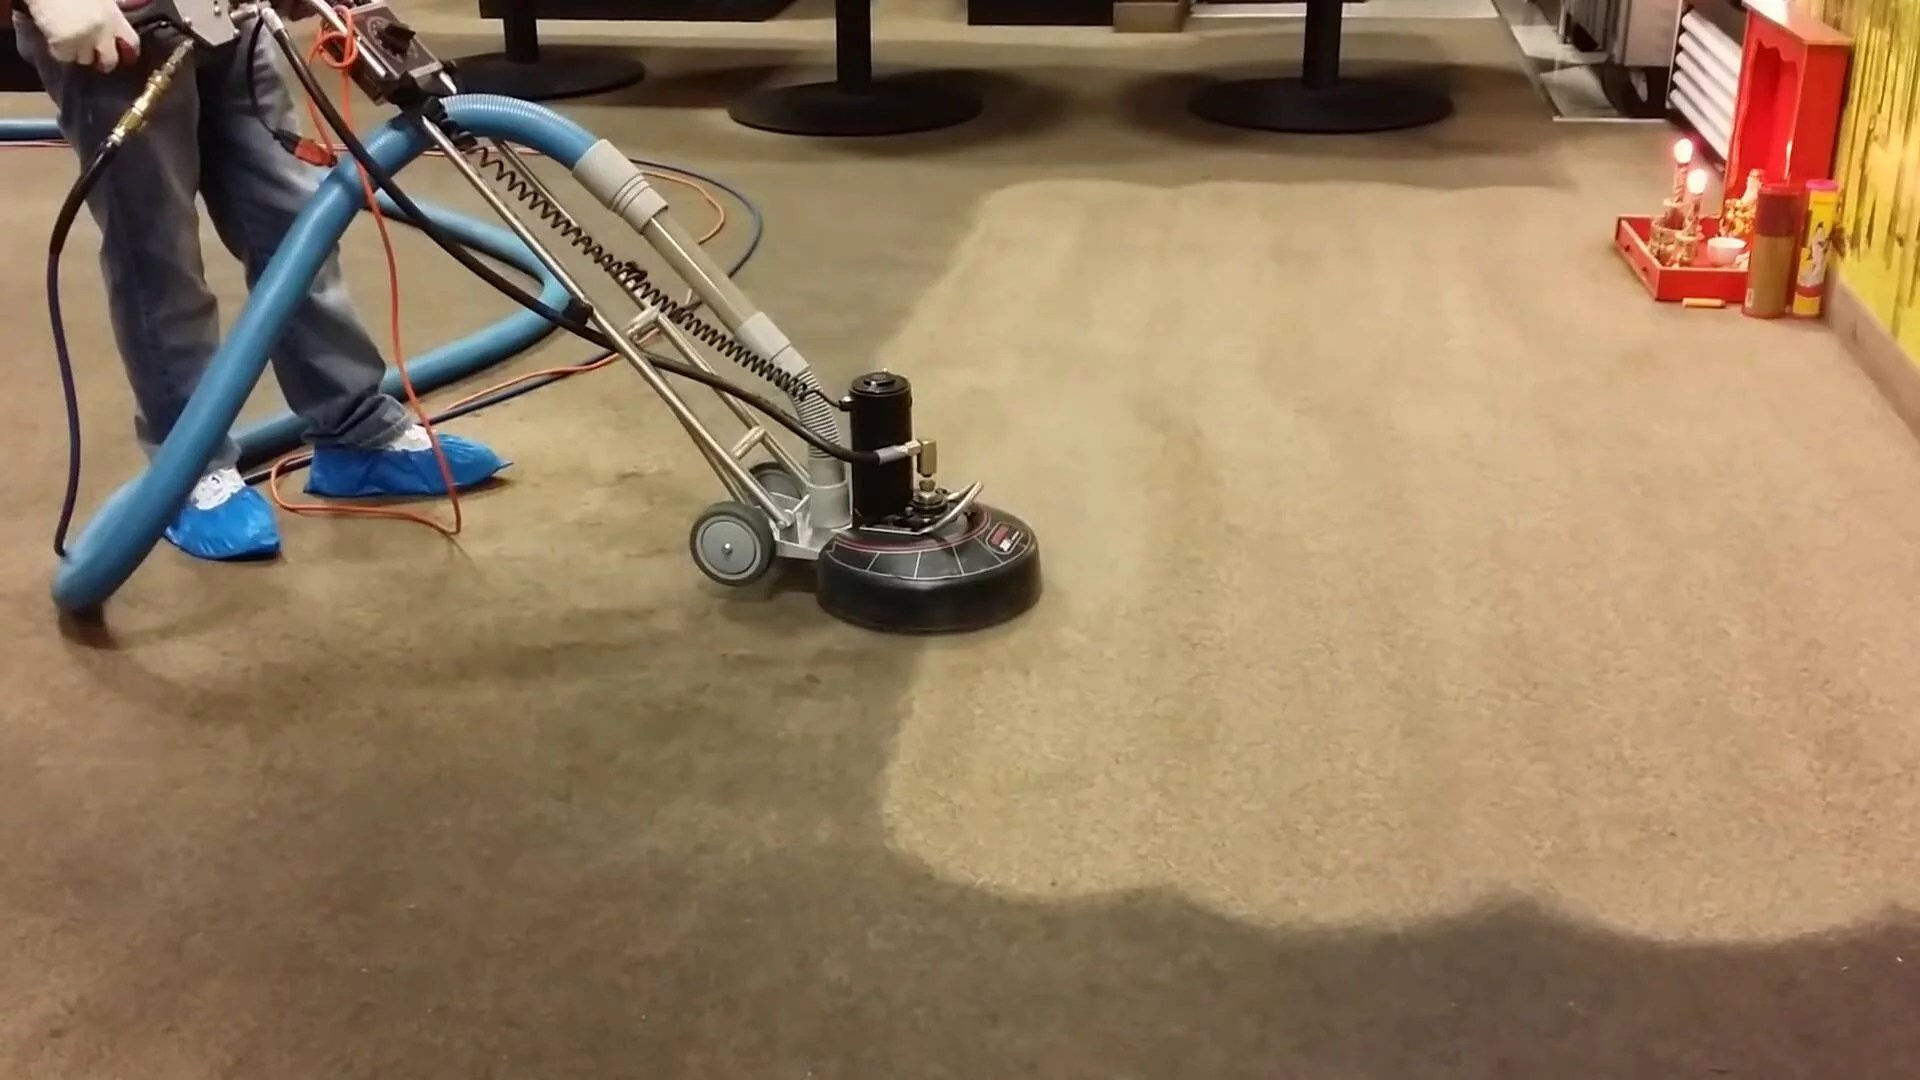 rotovac 360i triple jet carpet cleaning rotary extraction powerhead 12 cleaning width comes with carpet triple jet head to deep clean agitate